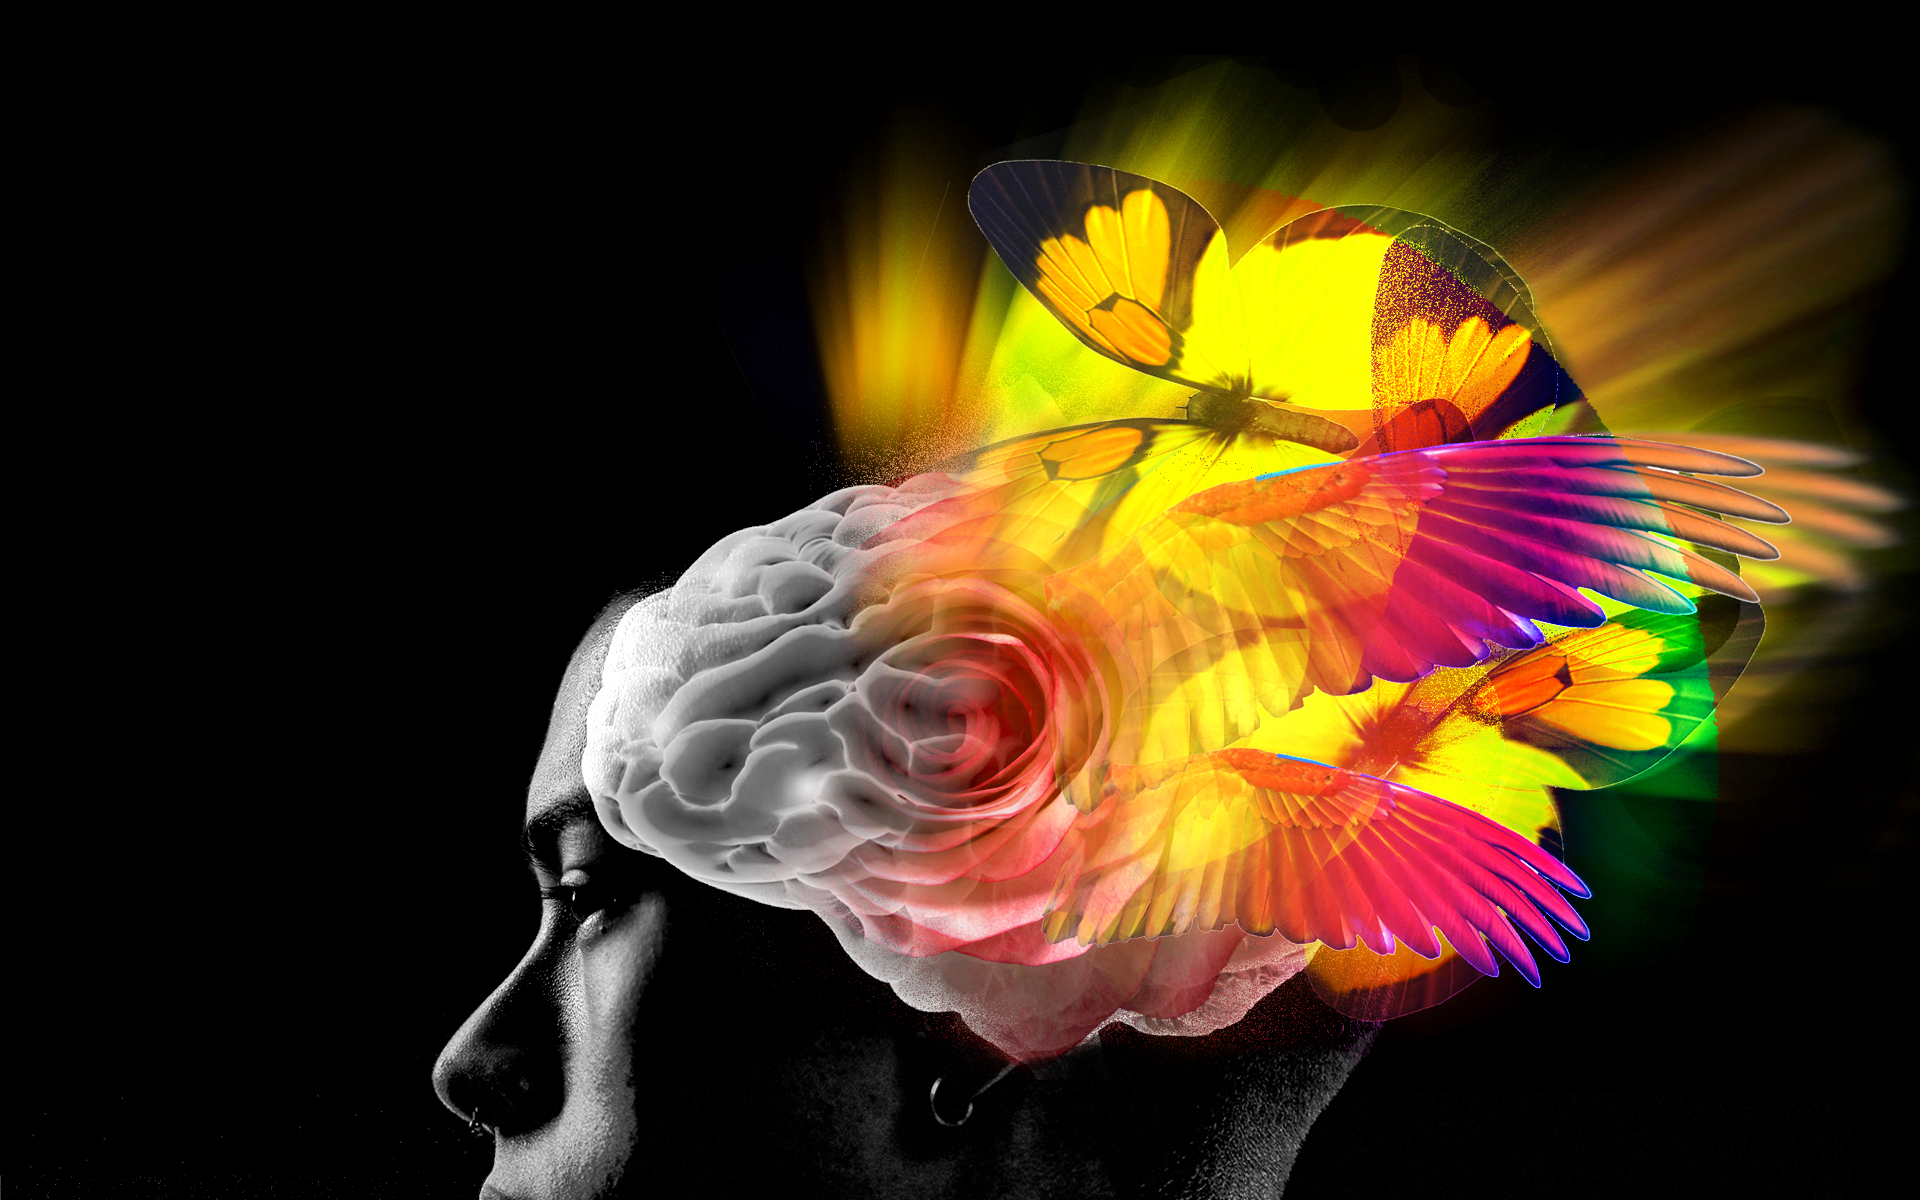 A photo illustration of a human brain with psychedelic thoughts.